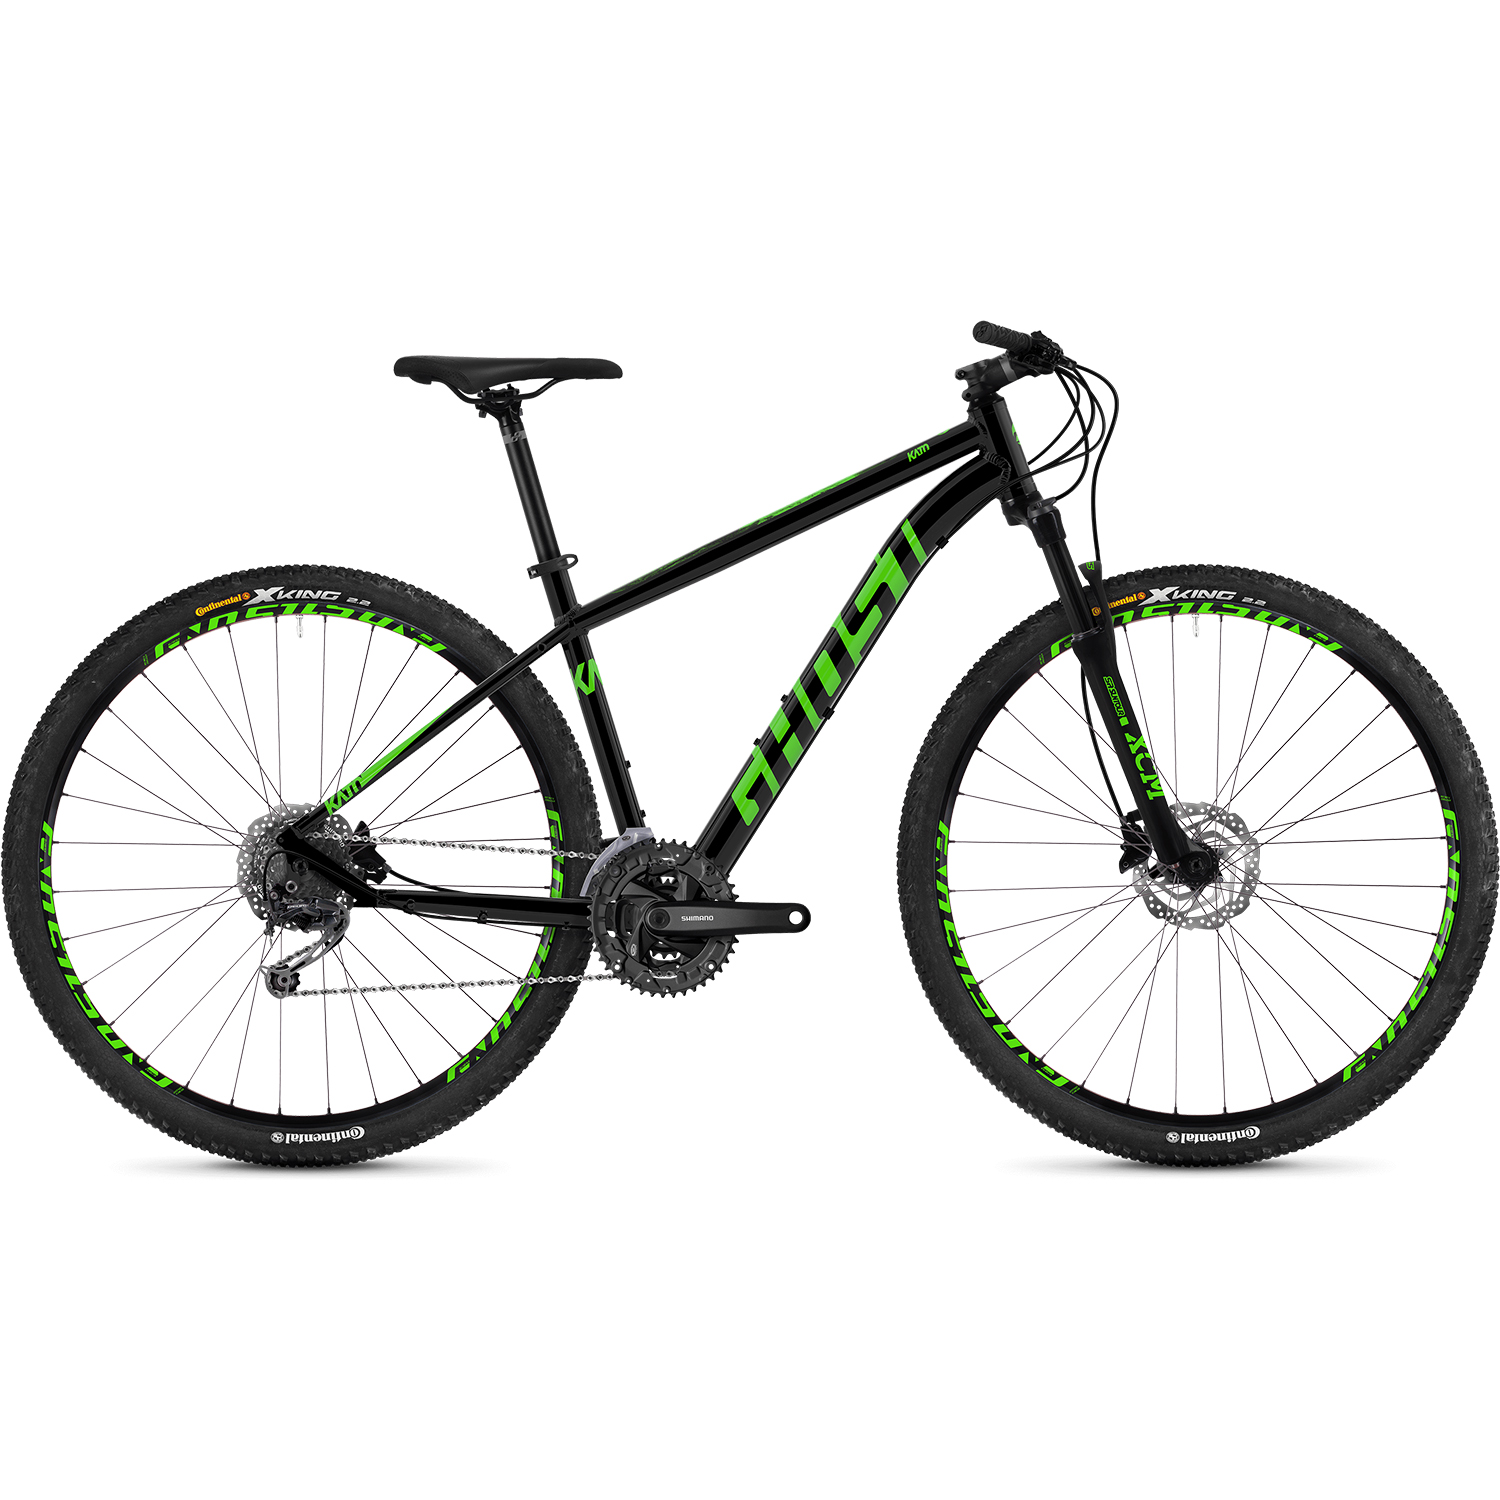 ghost kato 4 9 al u 29 zoll mountainbike hardtail mtb. Black Bedroom Furniture Sets. Home Design Ideas